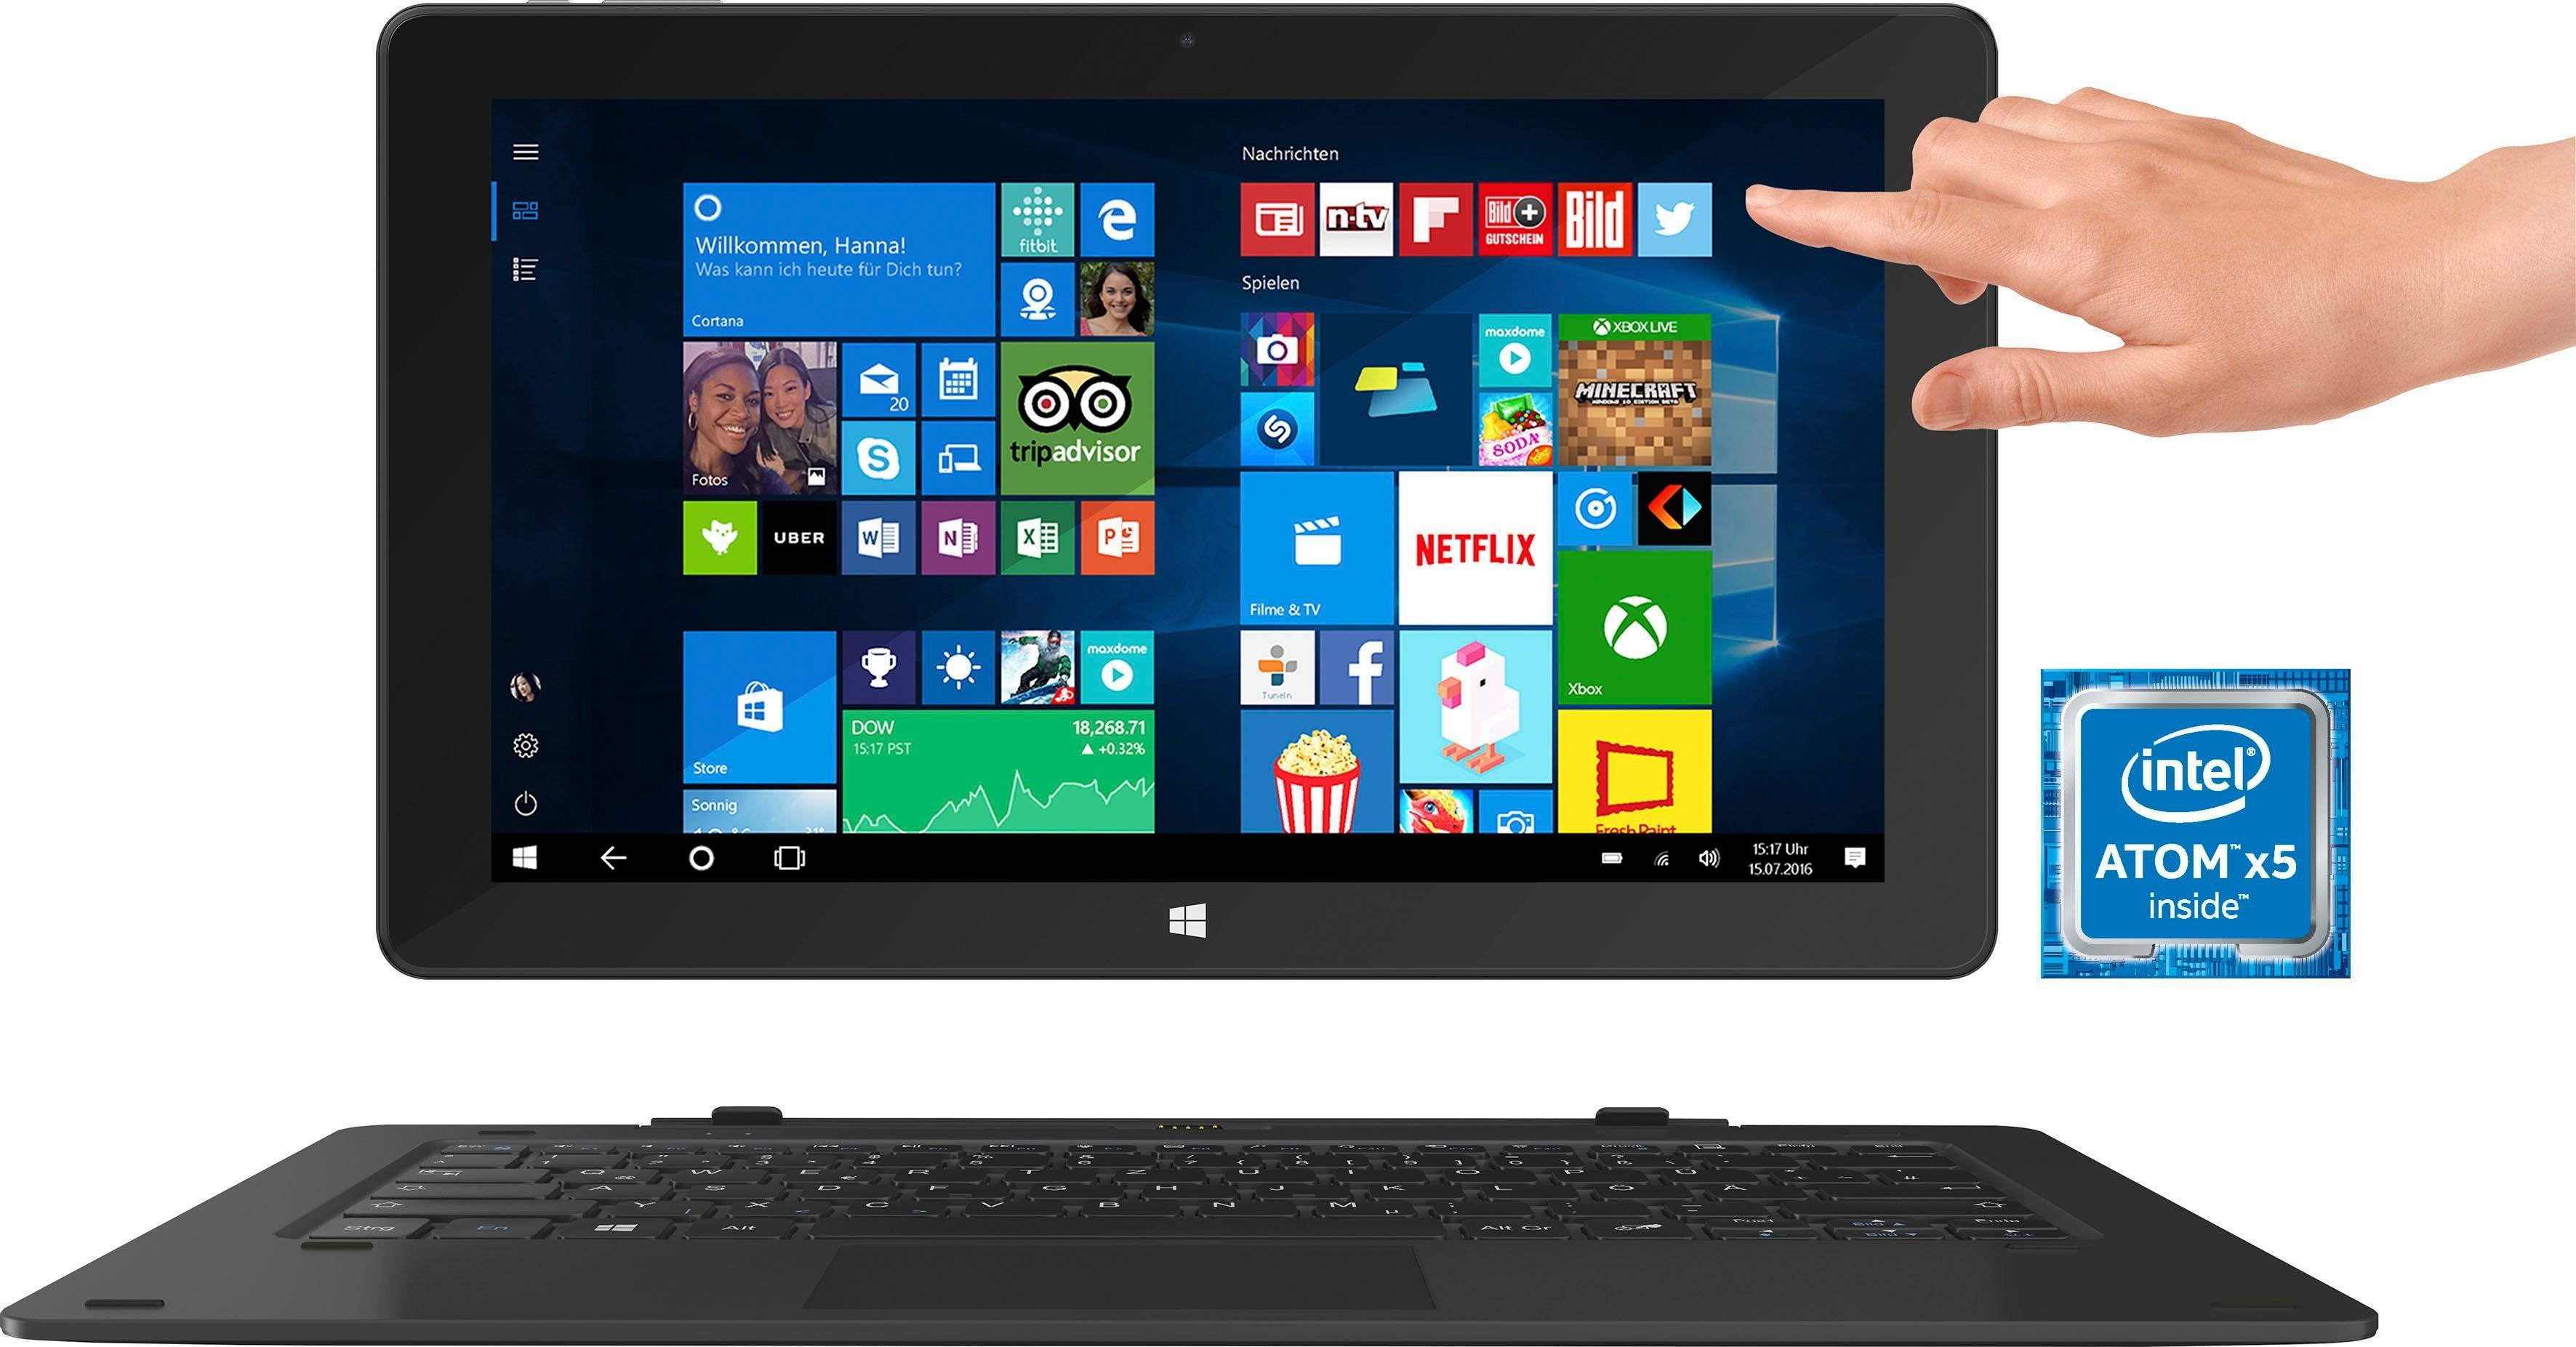 TrekStor SurfTab twin 11,6 3G - Volks-Tablet Tablet-PC, Microsoft® Windows® 10 Home, Quad-Core